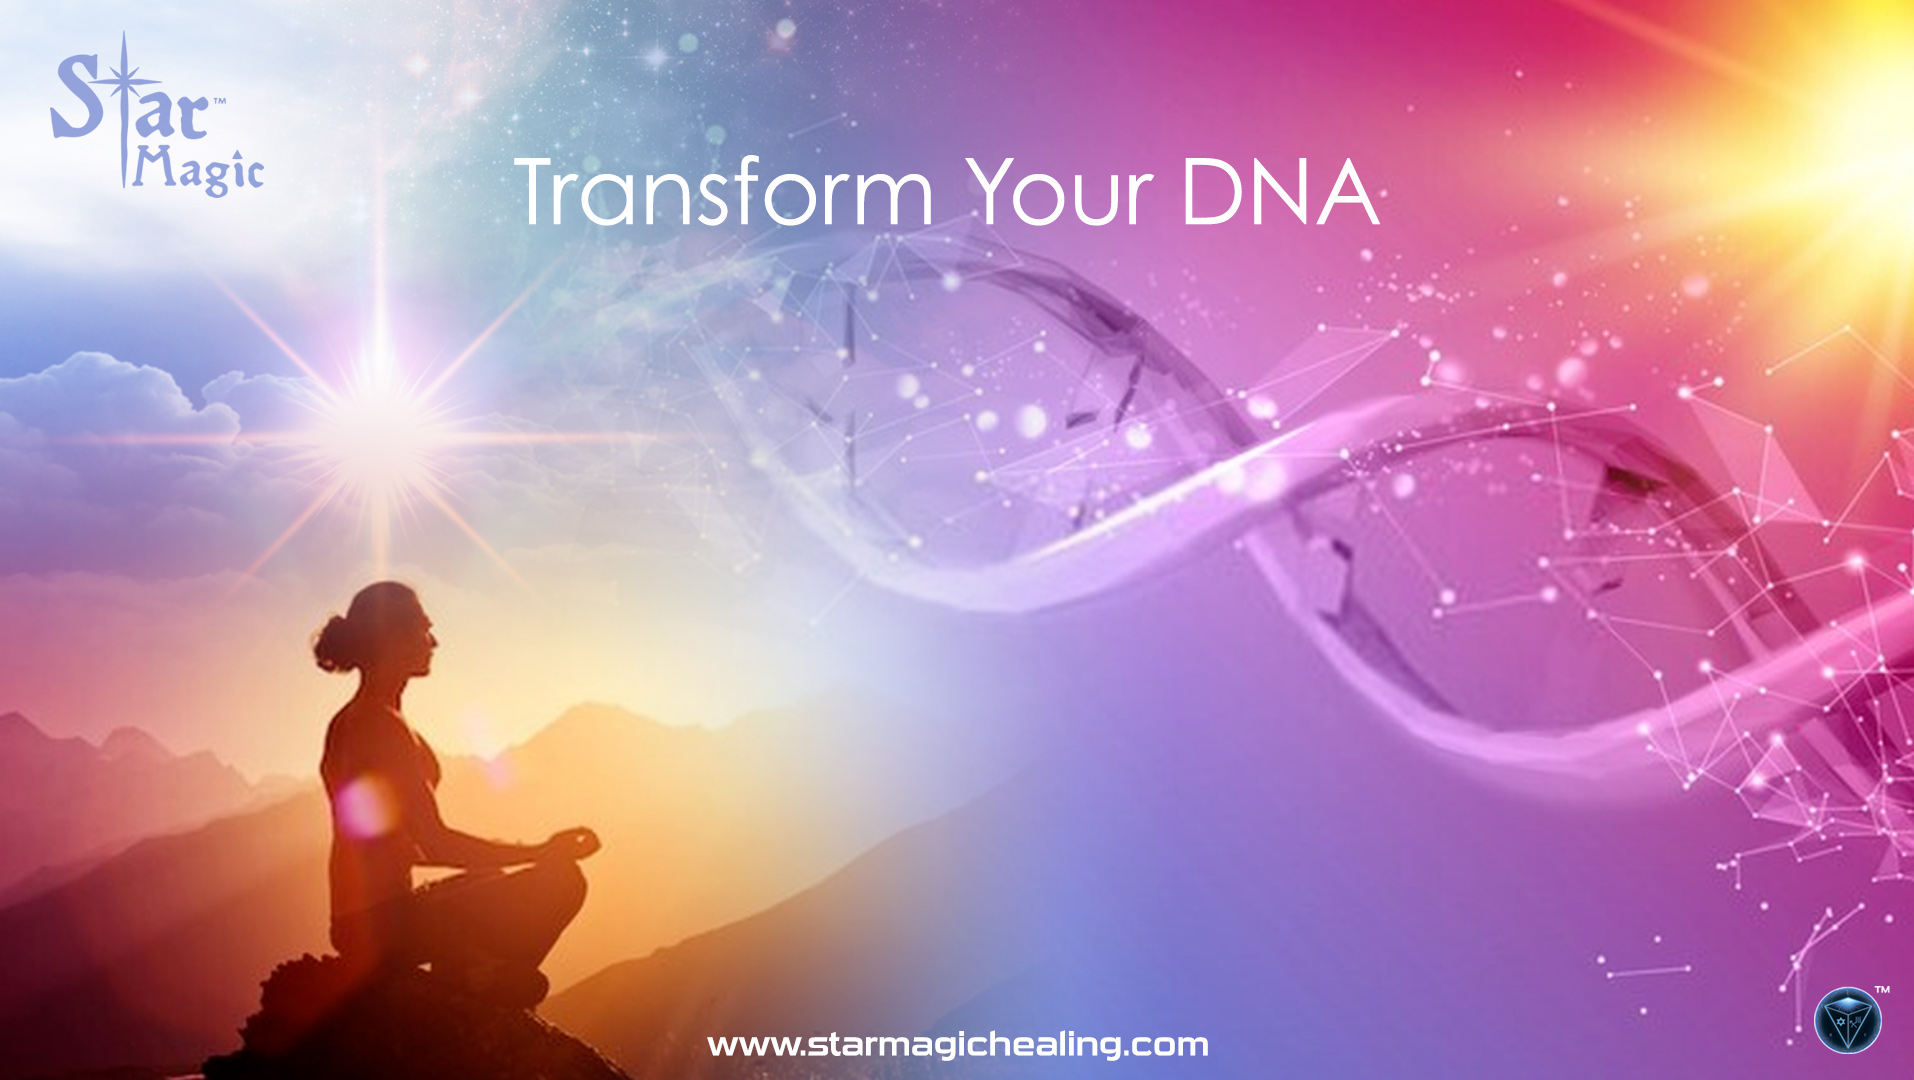 Transform Your DNA